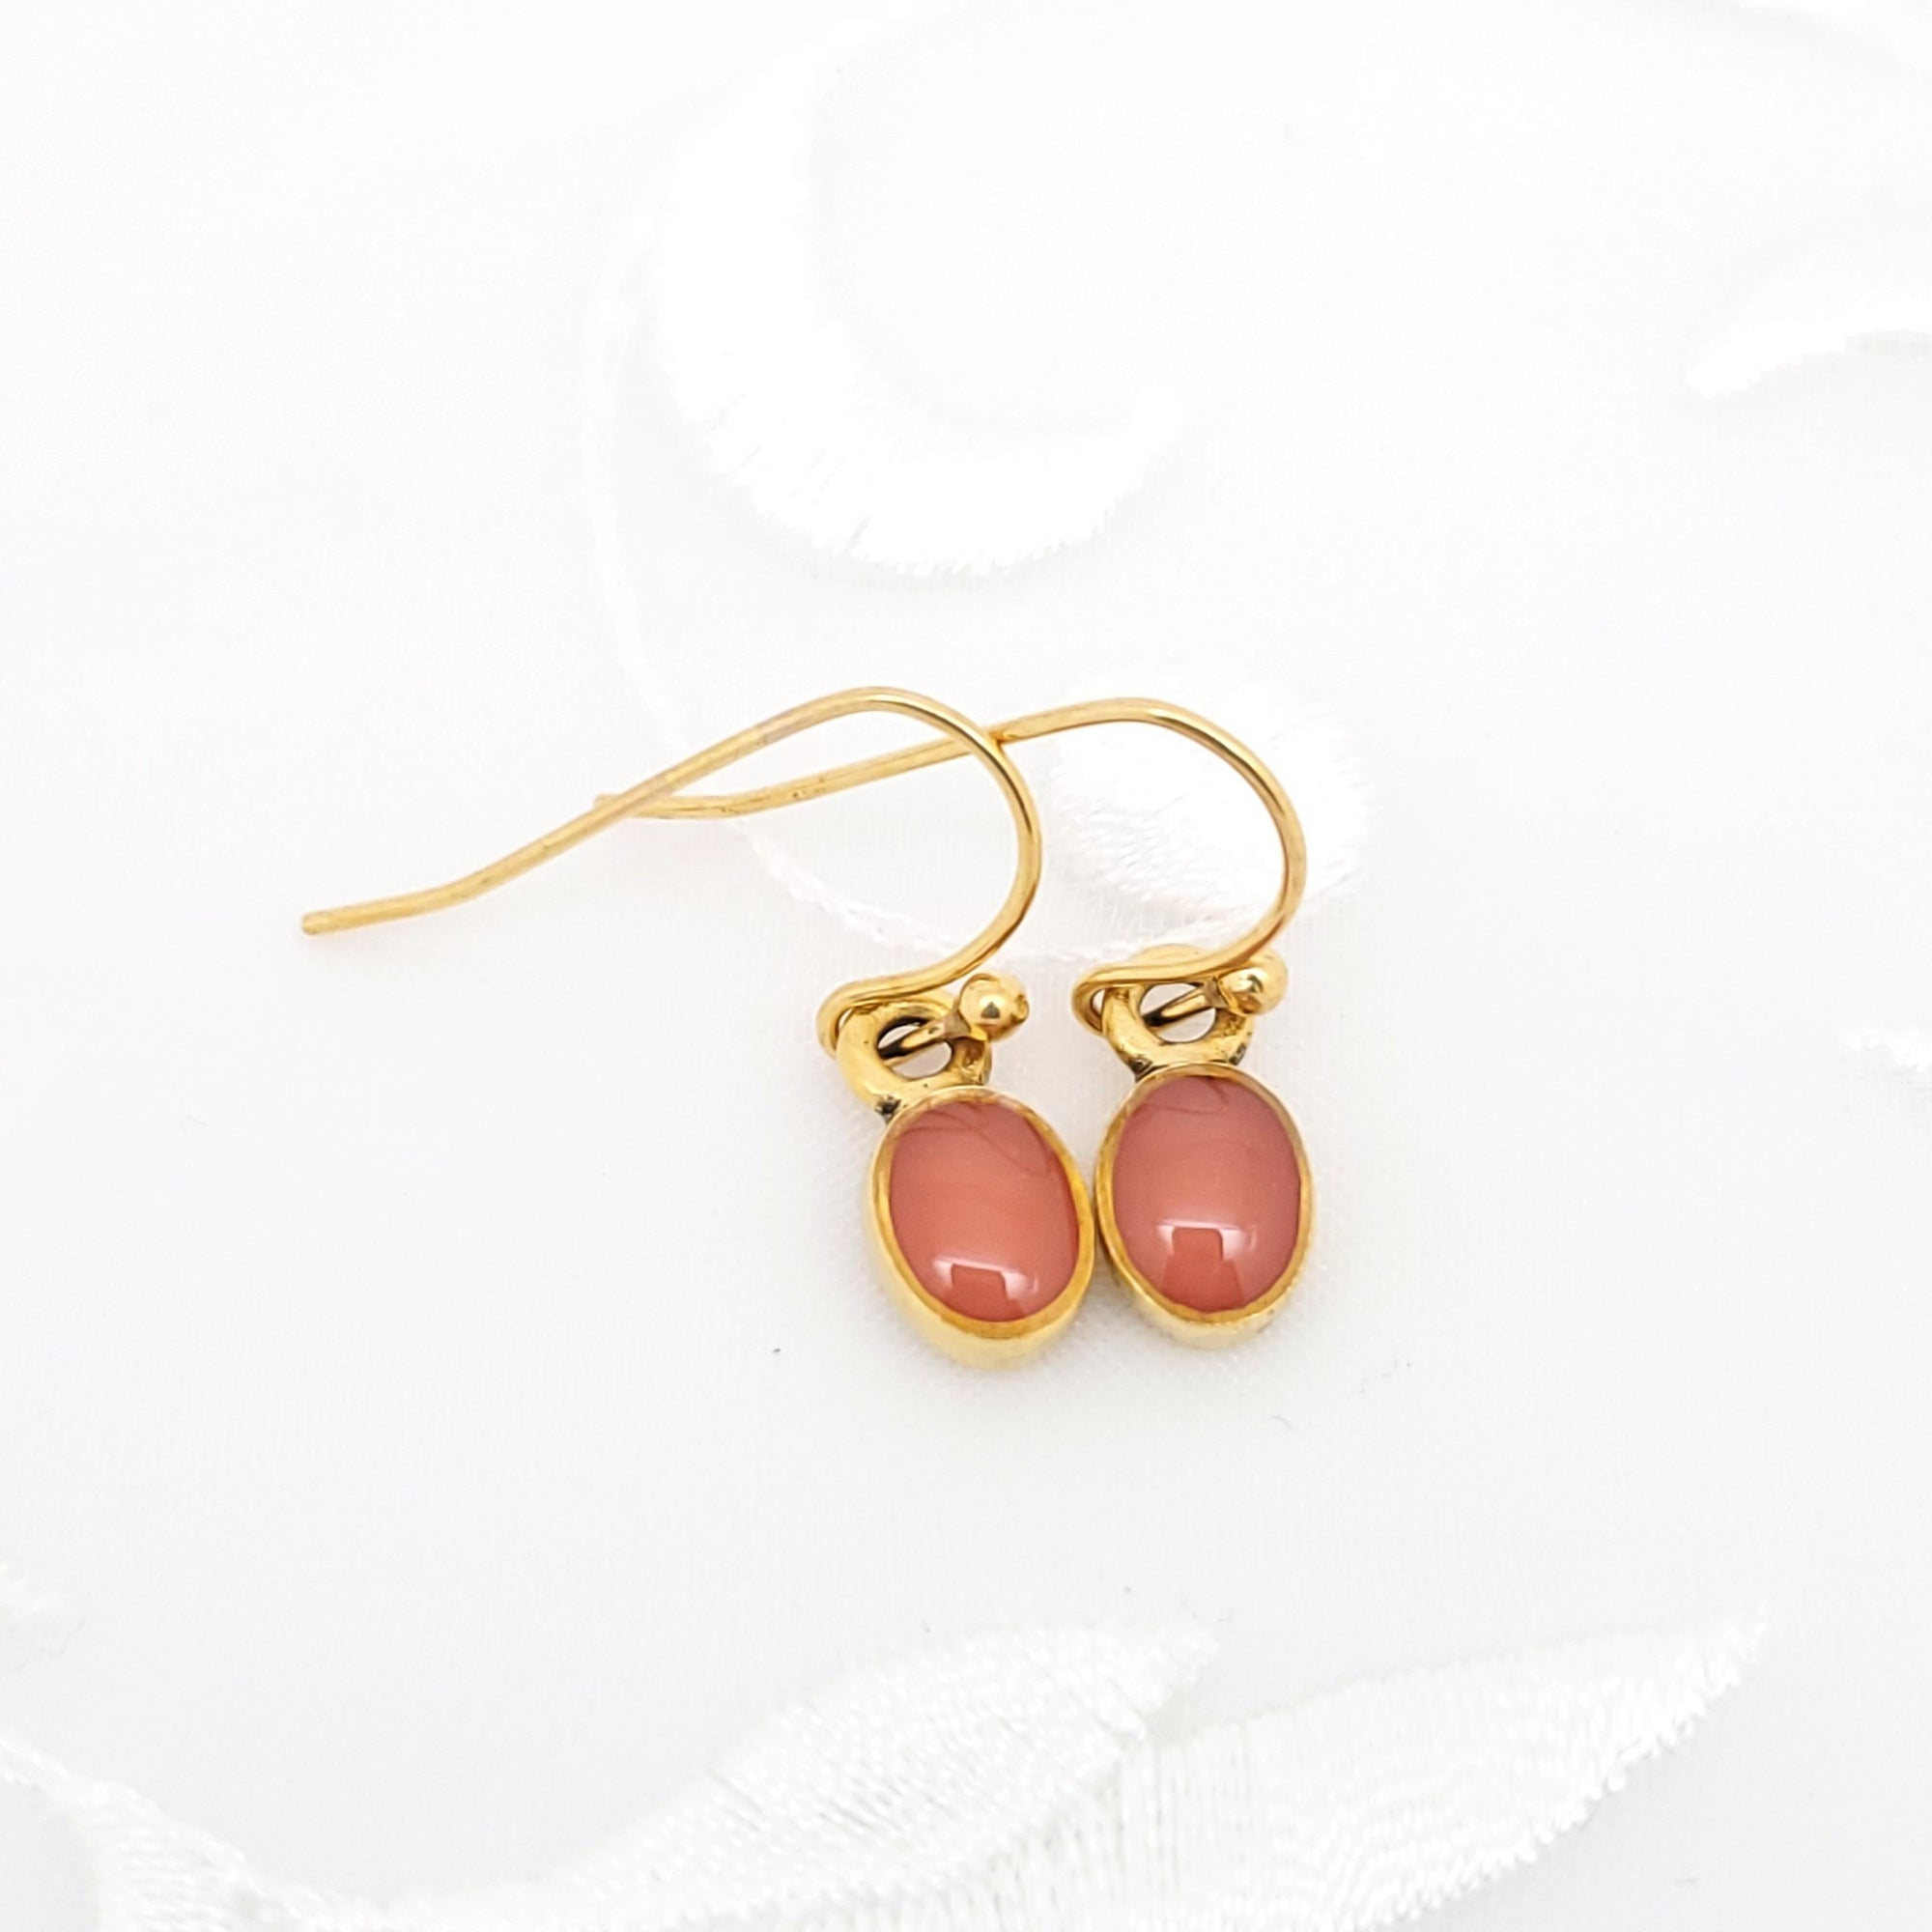 Antique Gold Tiny Oval Earrings with Orange Resin